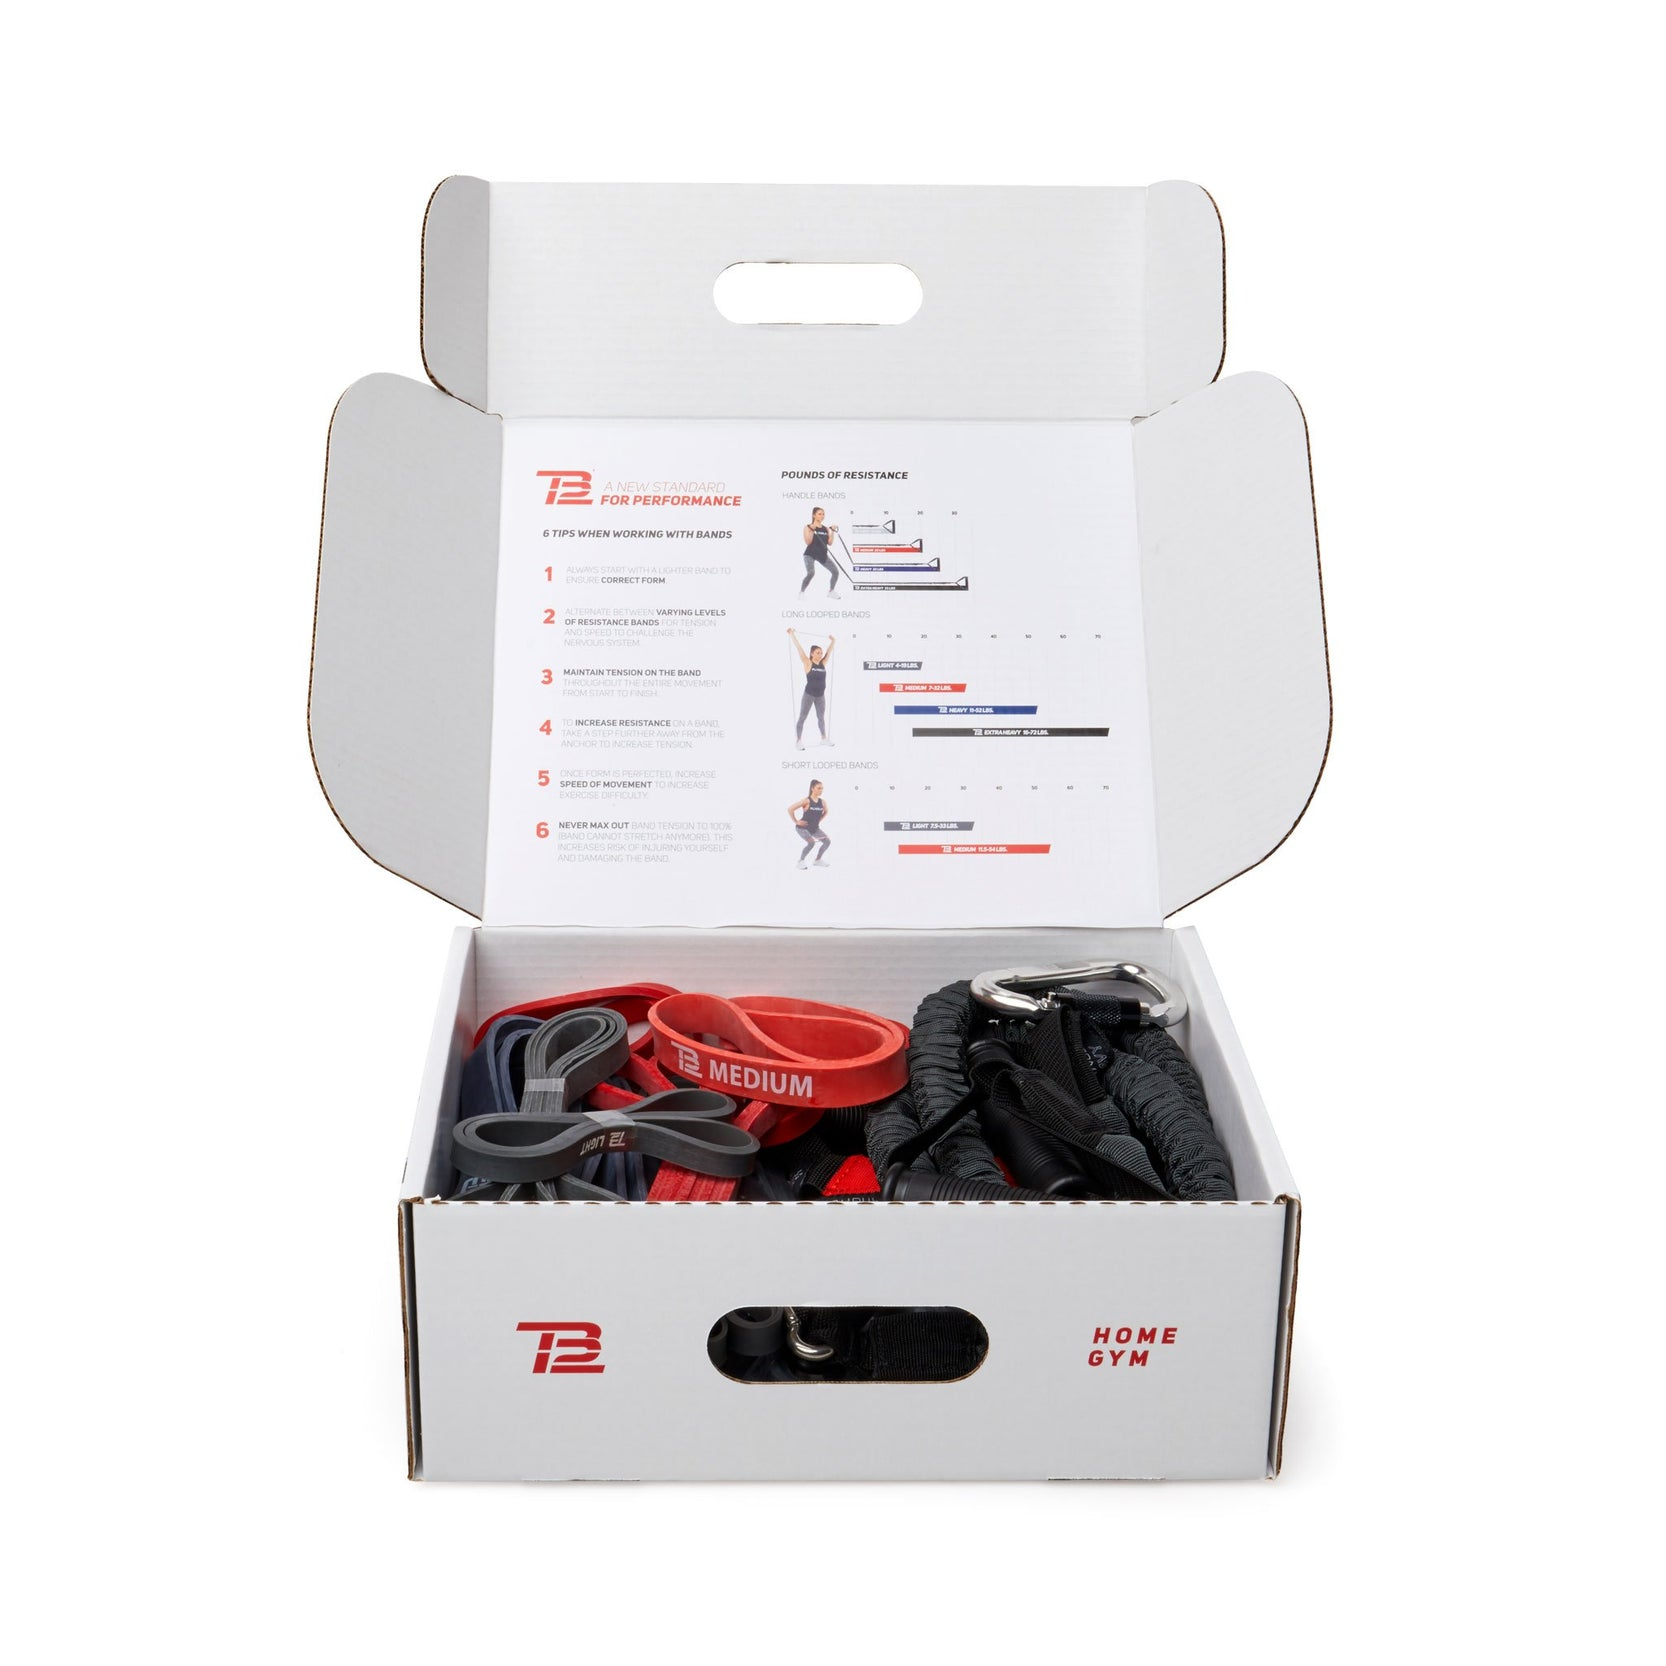 TB12™ Home Gym Kit